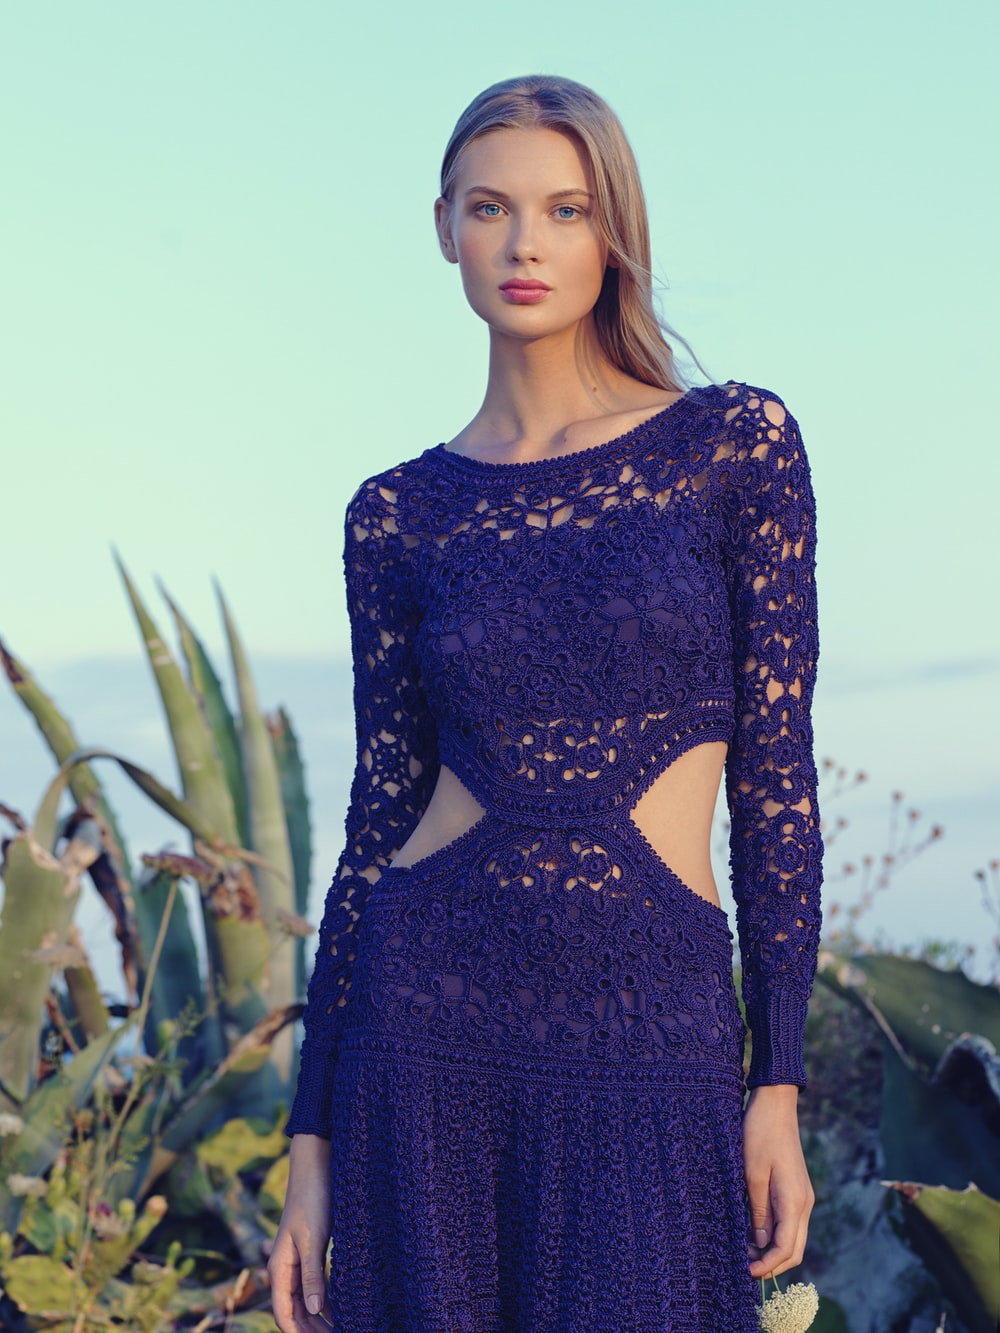 woman in purple lace knitted long-sleeved dress during daytime